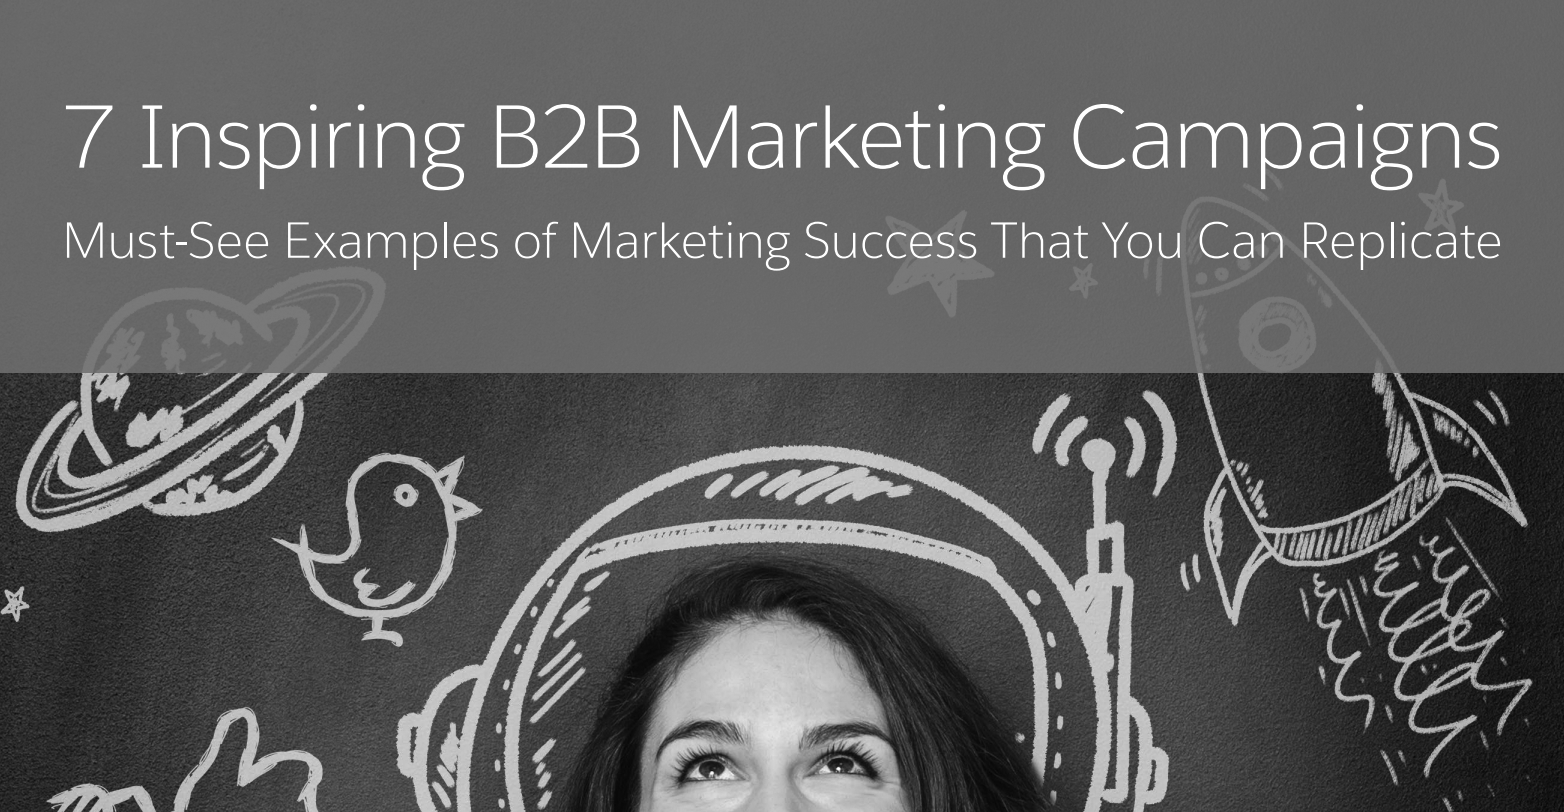 7 Inspiring B2B Marketing Campaigns